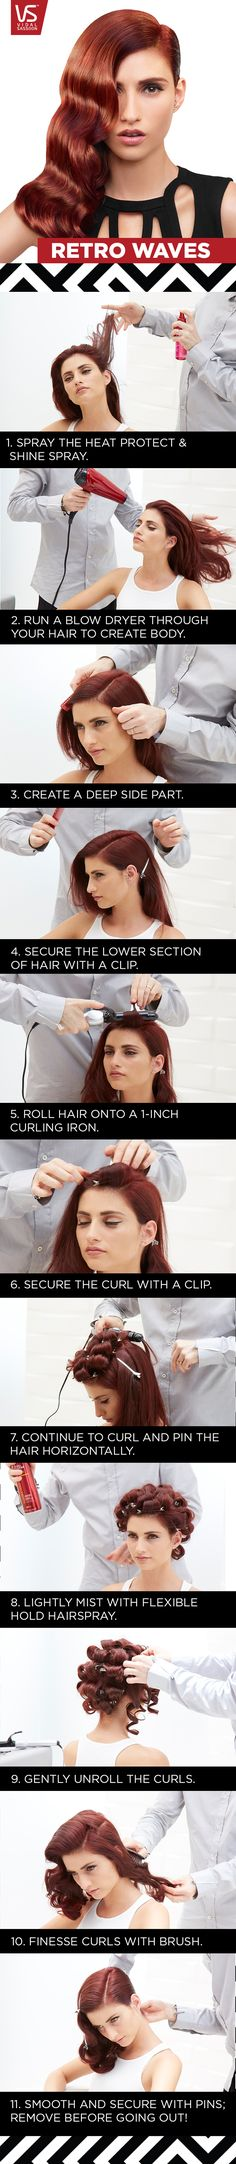 Hair Tutorial: Recreate this dreamy vintage-inspired wave with tips from Vidal Sassoon expert stylist Michael Forrey.